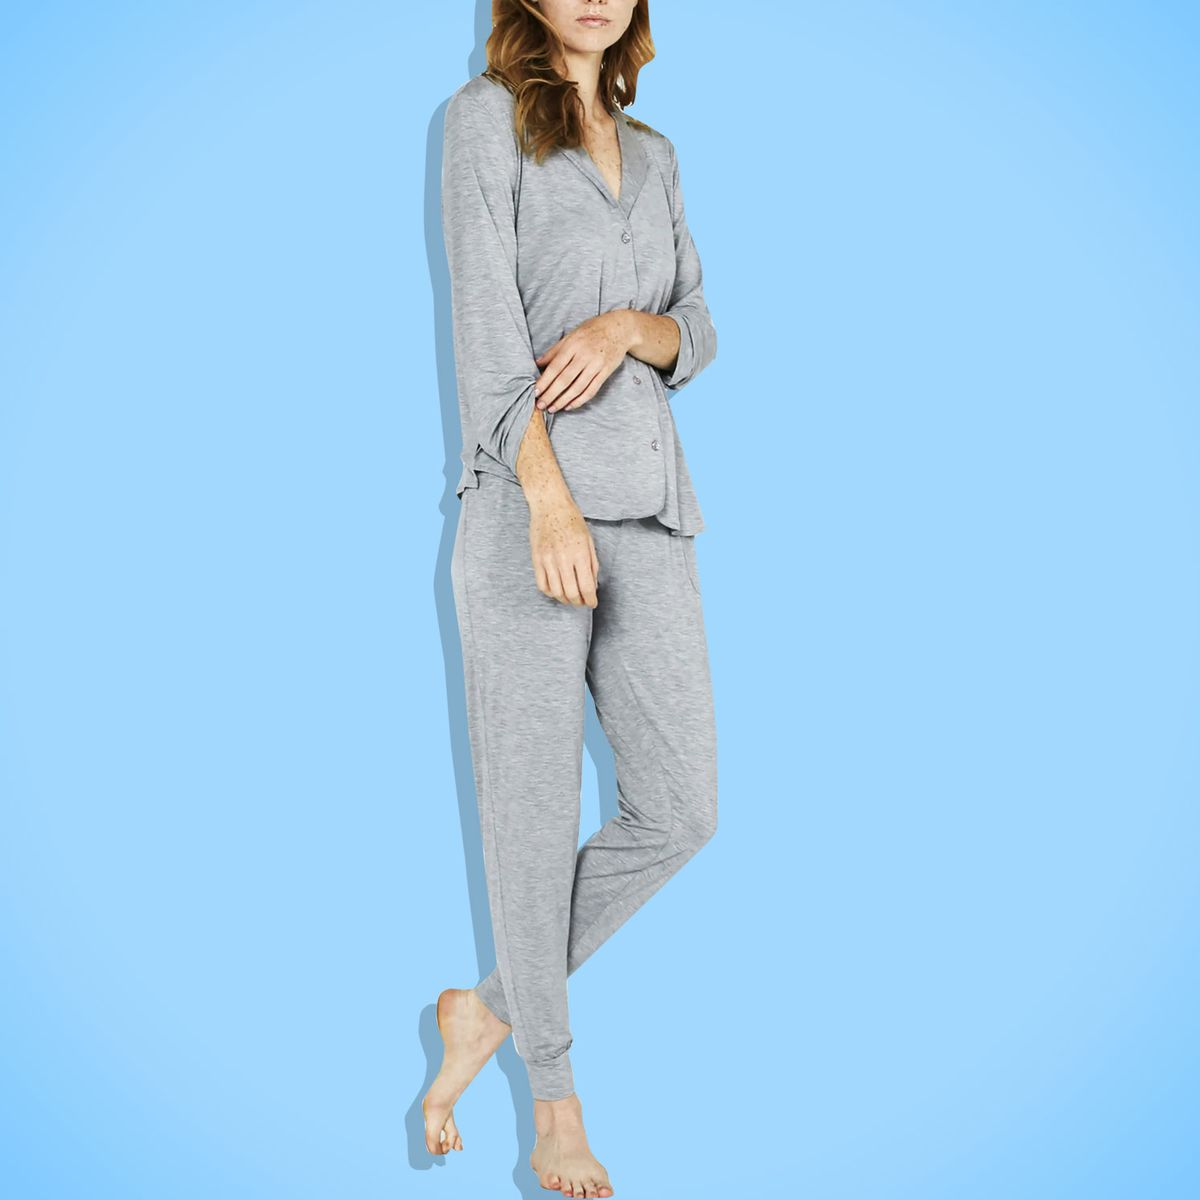 I WOMEN/'S SLEEP PANTS AND PAJAMA BOTTOMS SOFT AND WARM VARIOUS STYLES SIZES